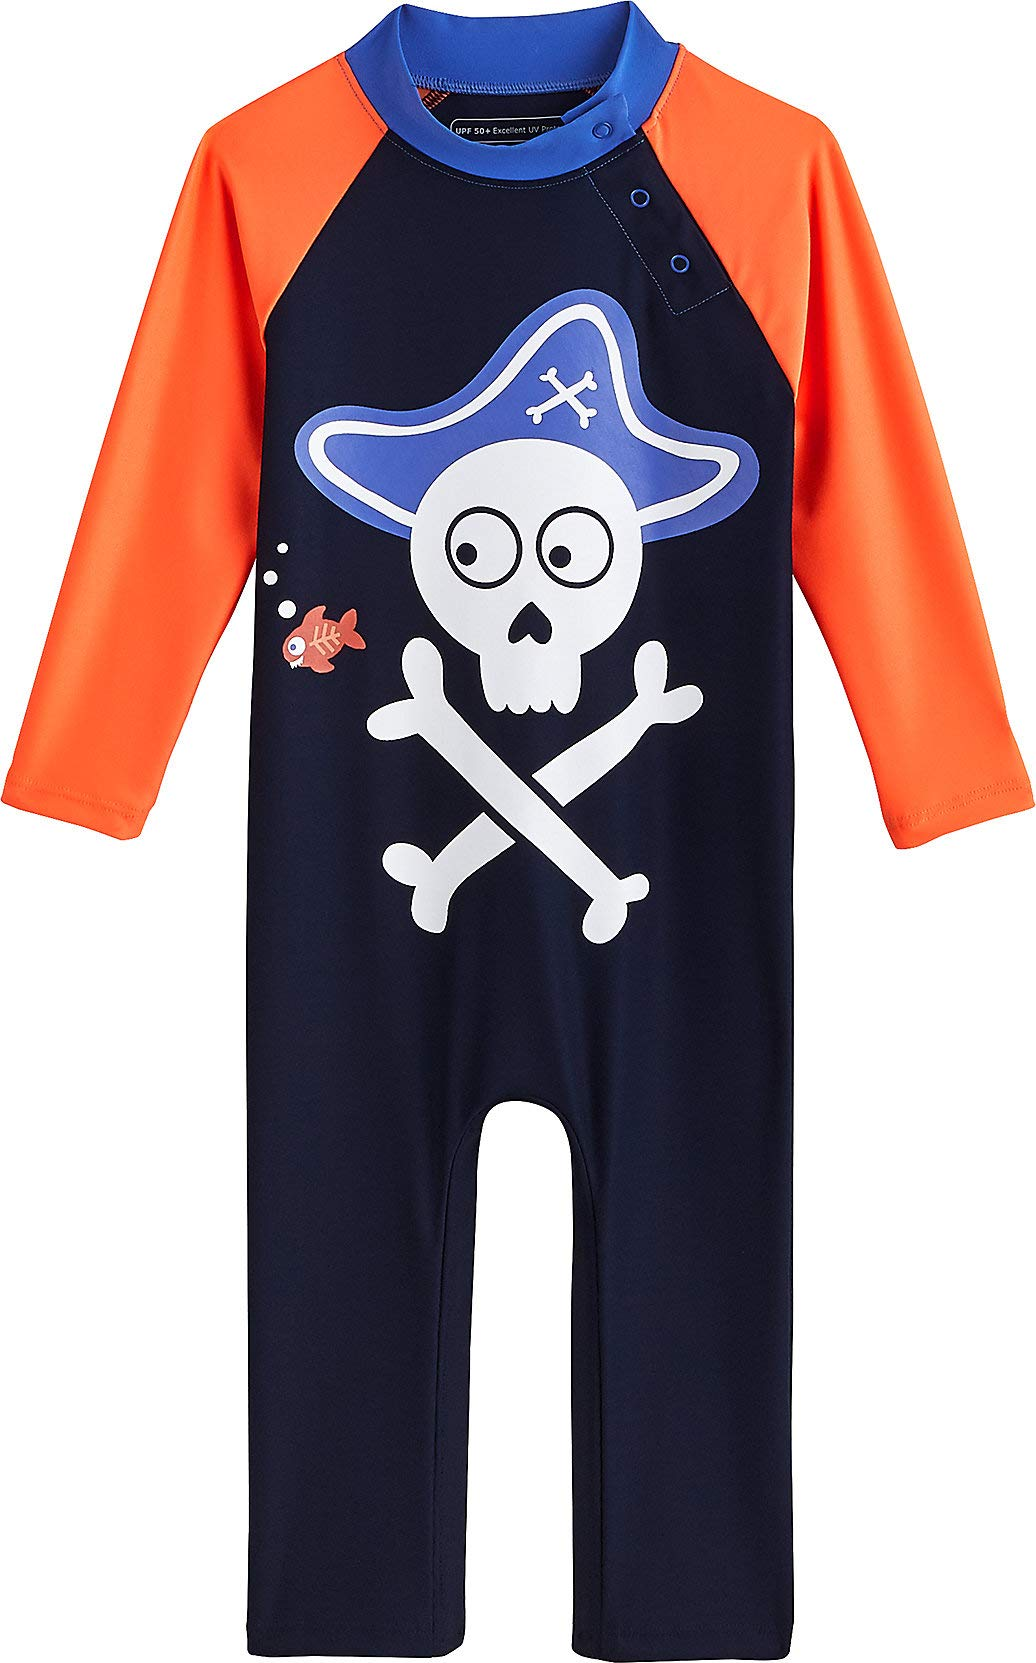 Coolibar UPF 50+ Baby Beach One-Piece Swimsuit - Sun Protective (6-12 Months- Navy Pirate) by Coolibar